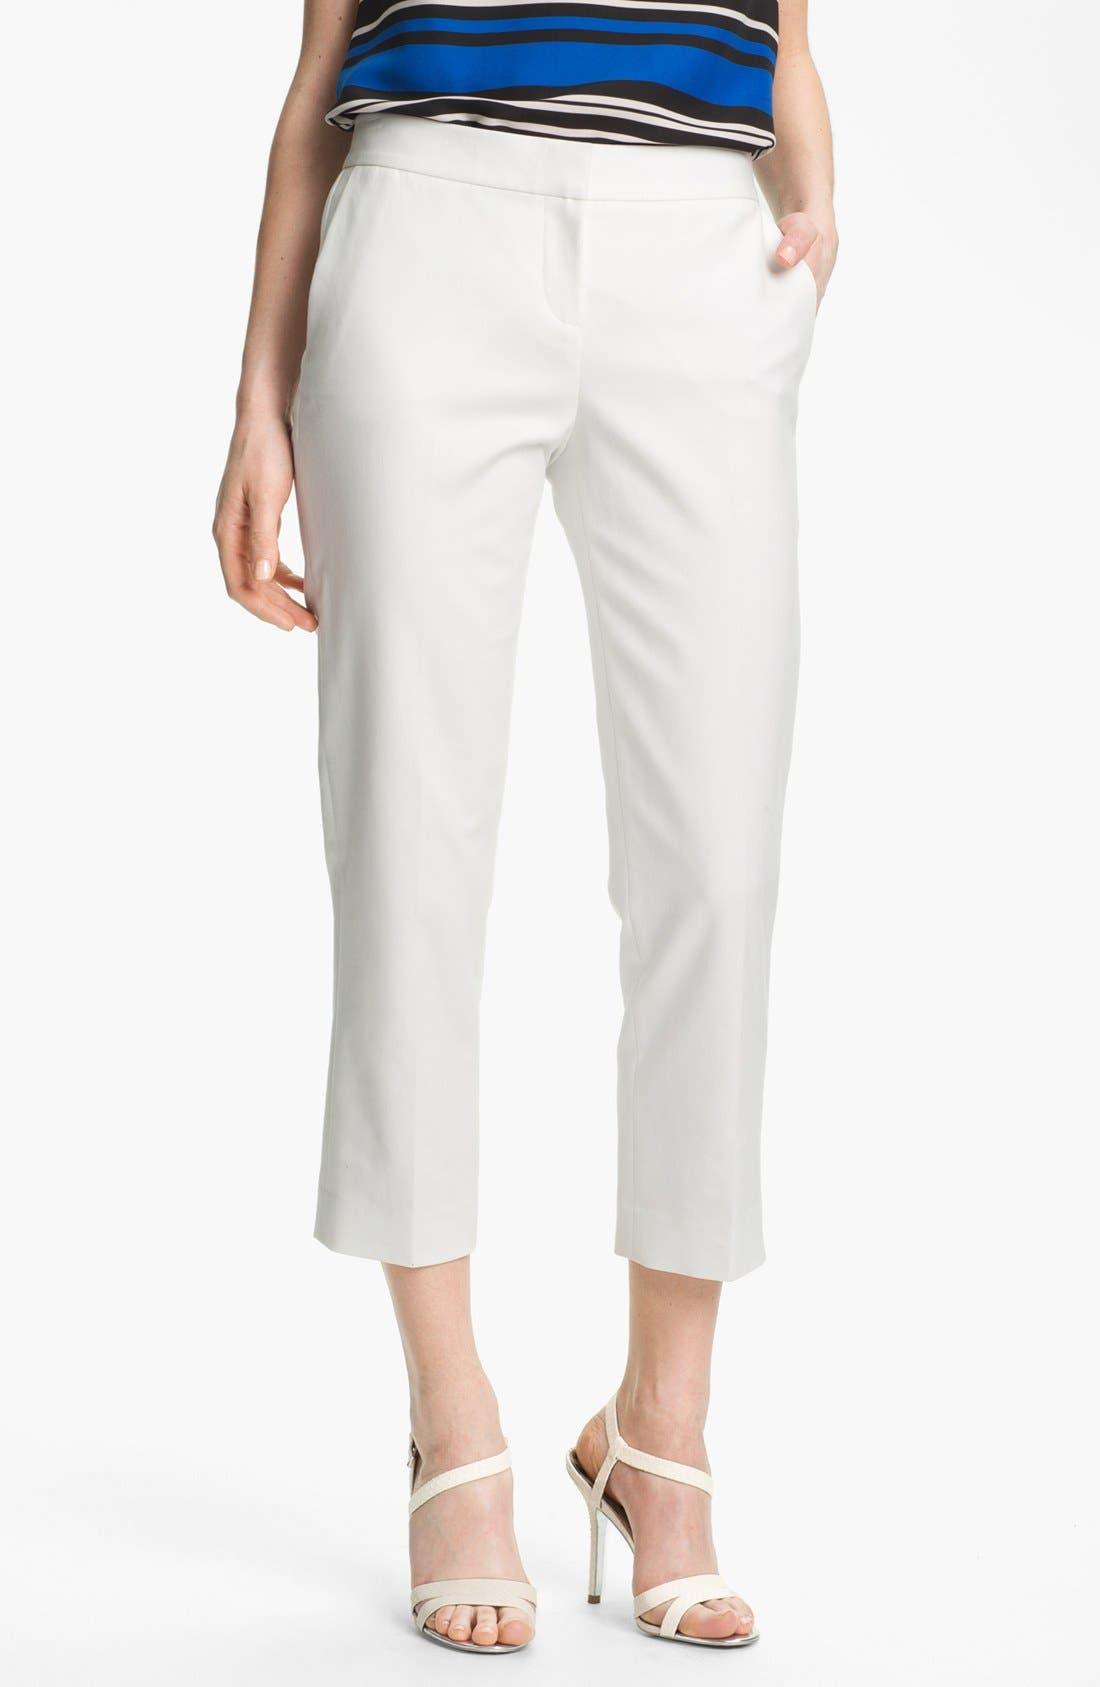 Alternate Image 1 Selected - Vince Camuto Skinny Crop Pants